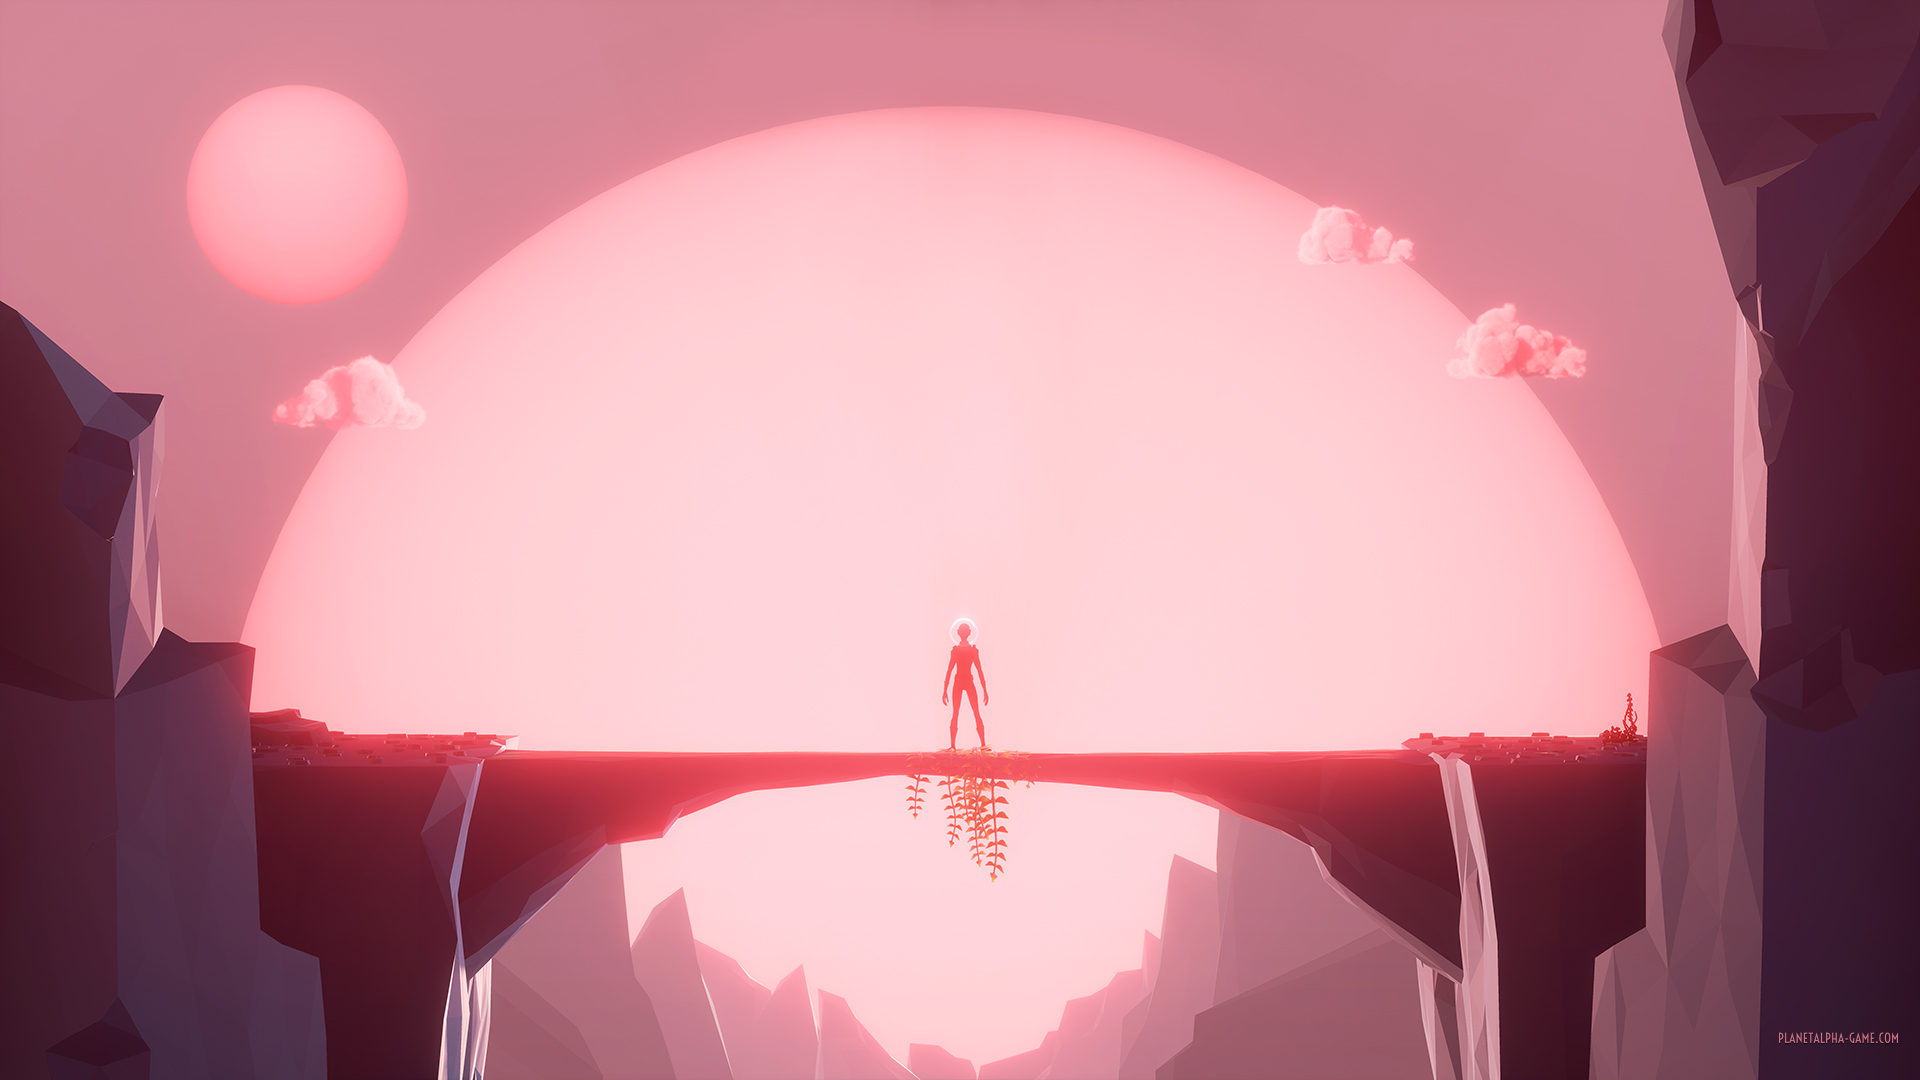 PLANET ALPHA   PLANET ALPHA is an adventure that takes place in a living alien world where you have the ability to control the day and night.